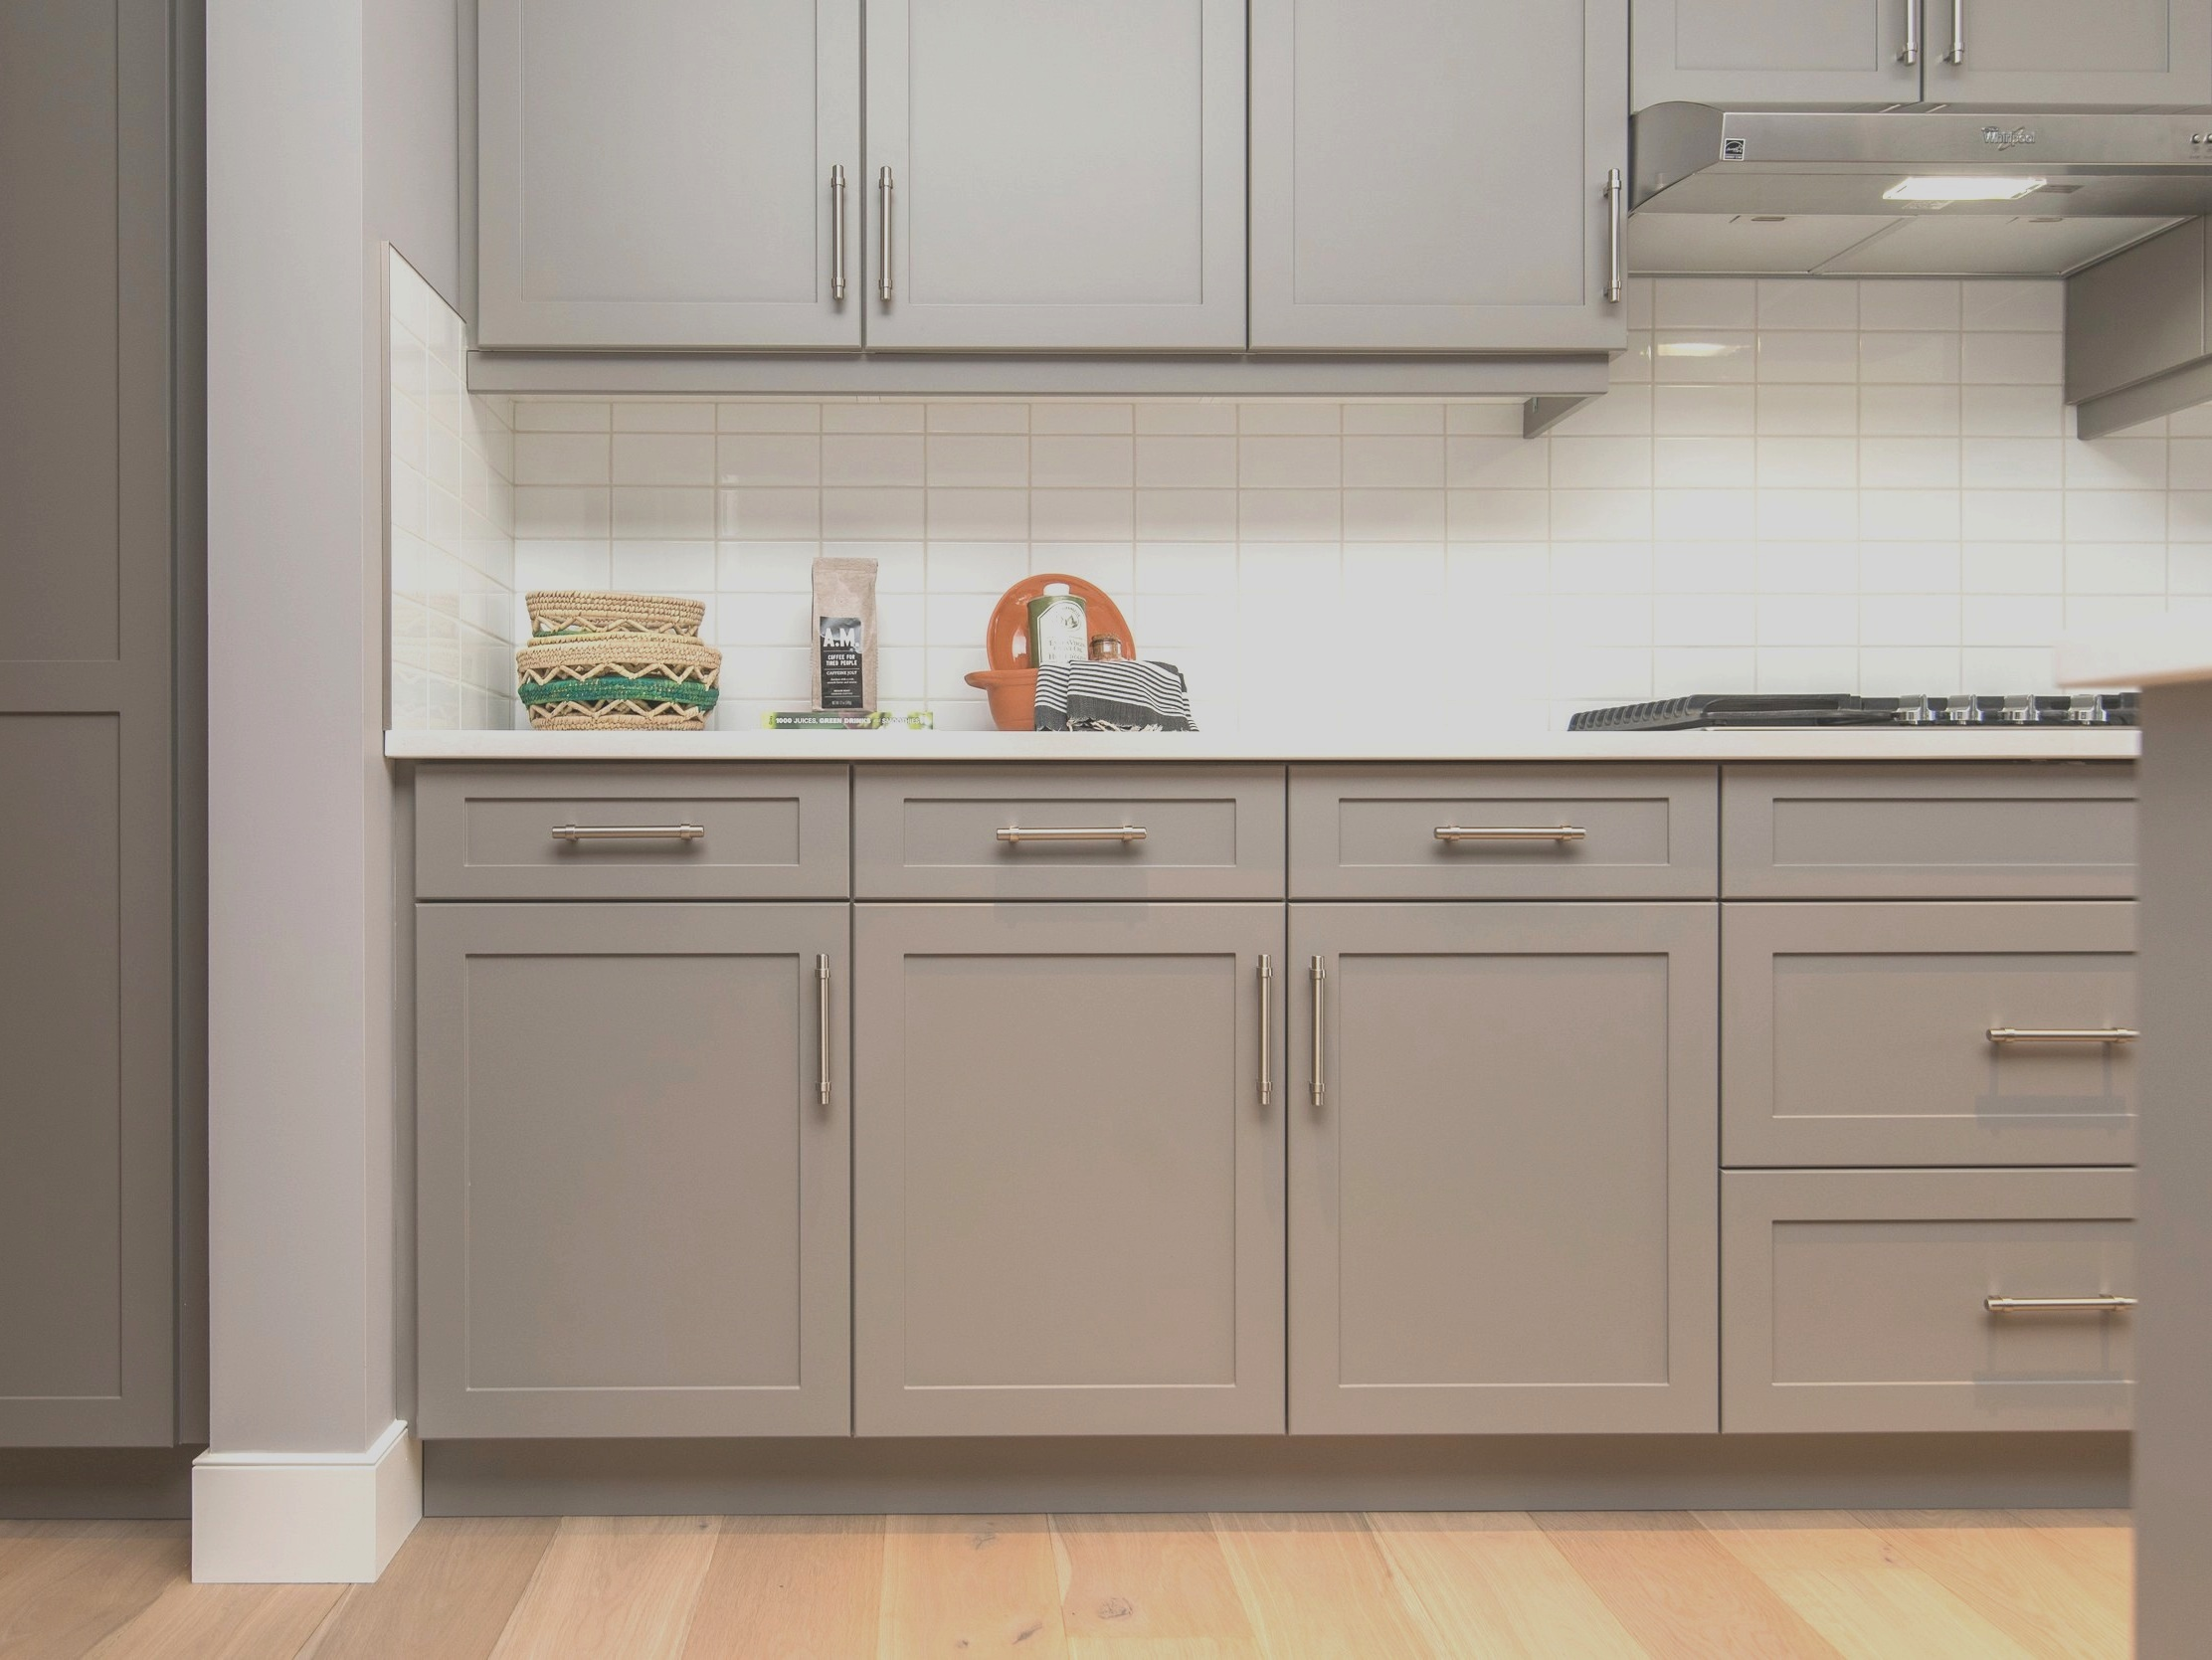 We help homeowners design their dream kitchen and bathrooms. -